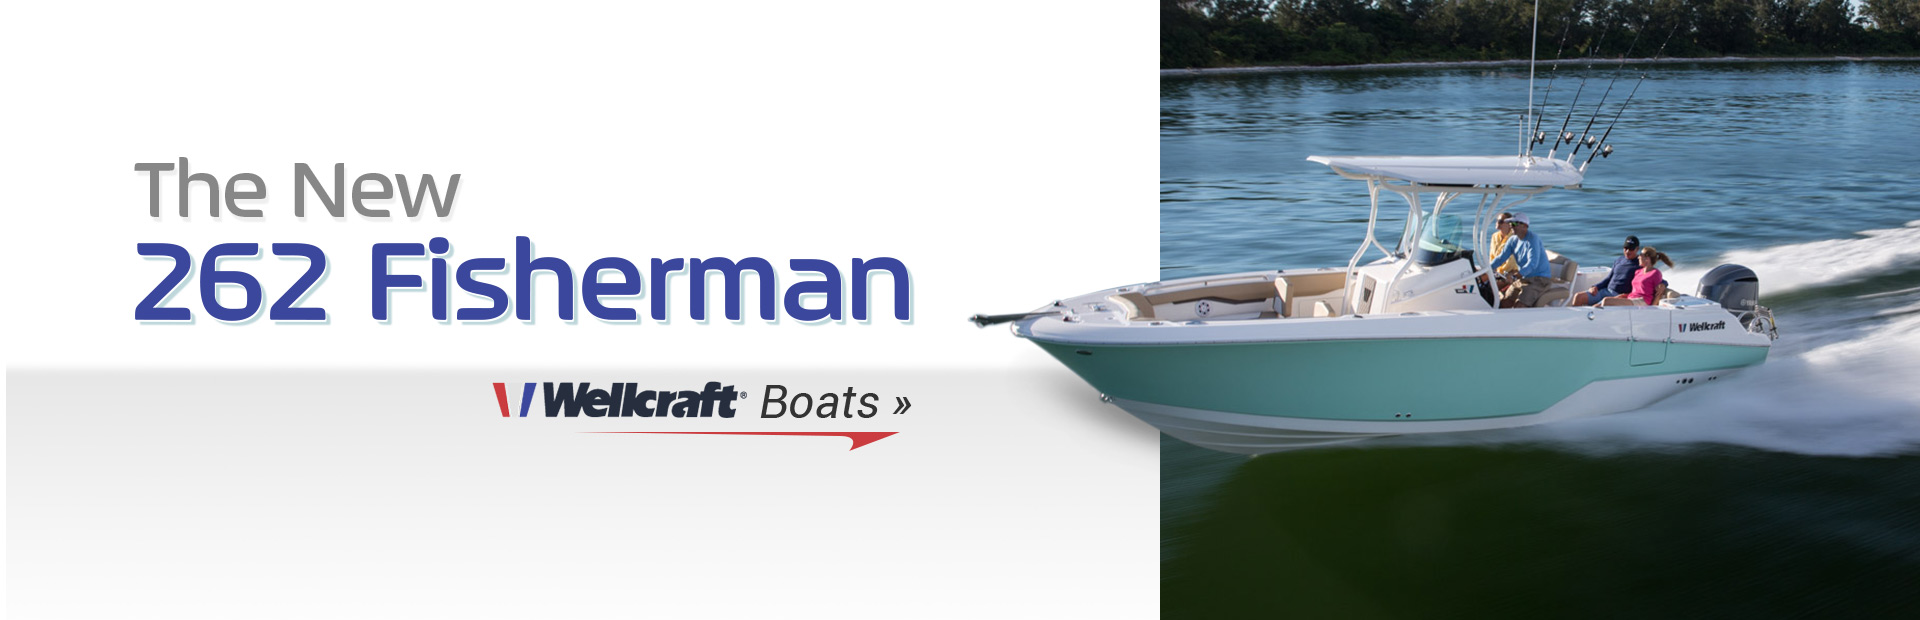 New Wellcraft 262 Fisherman: Click here for details.